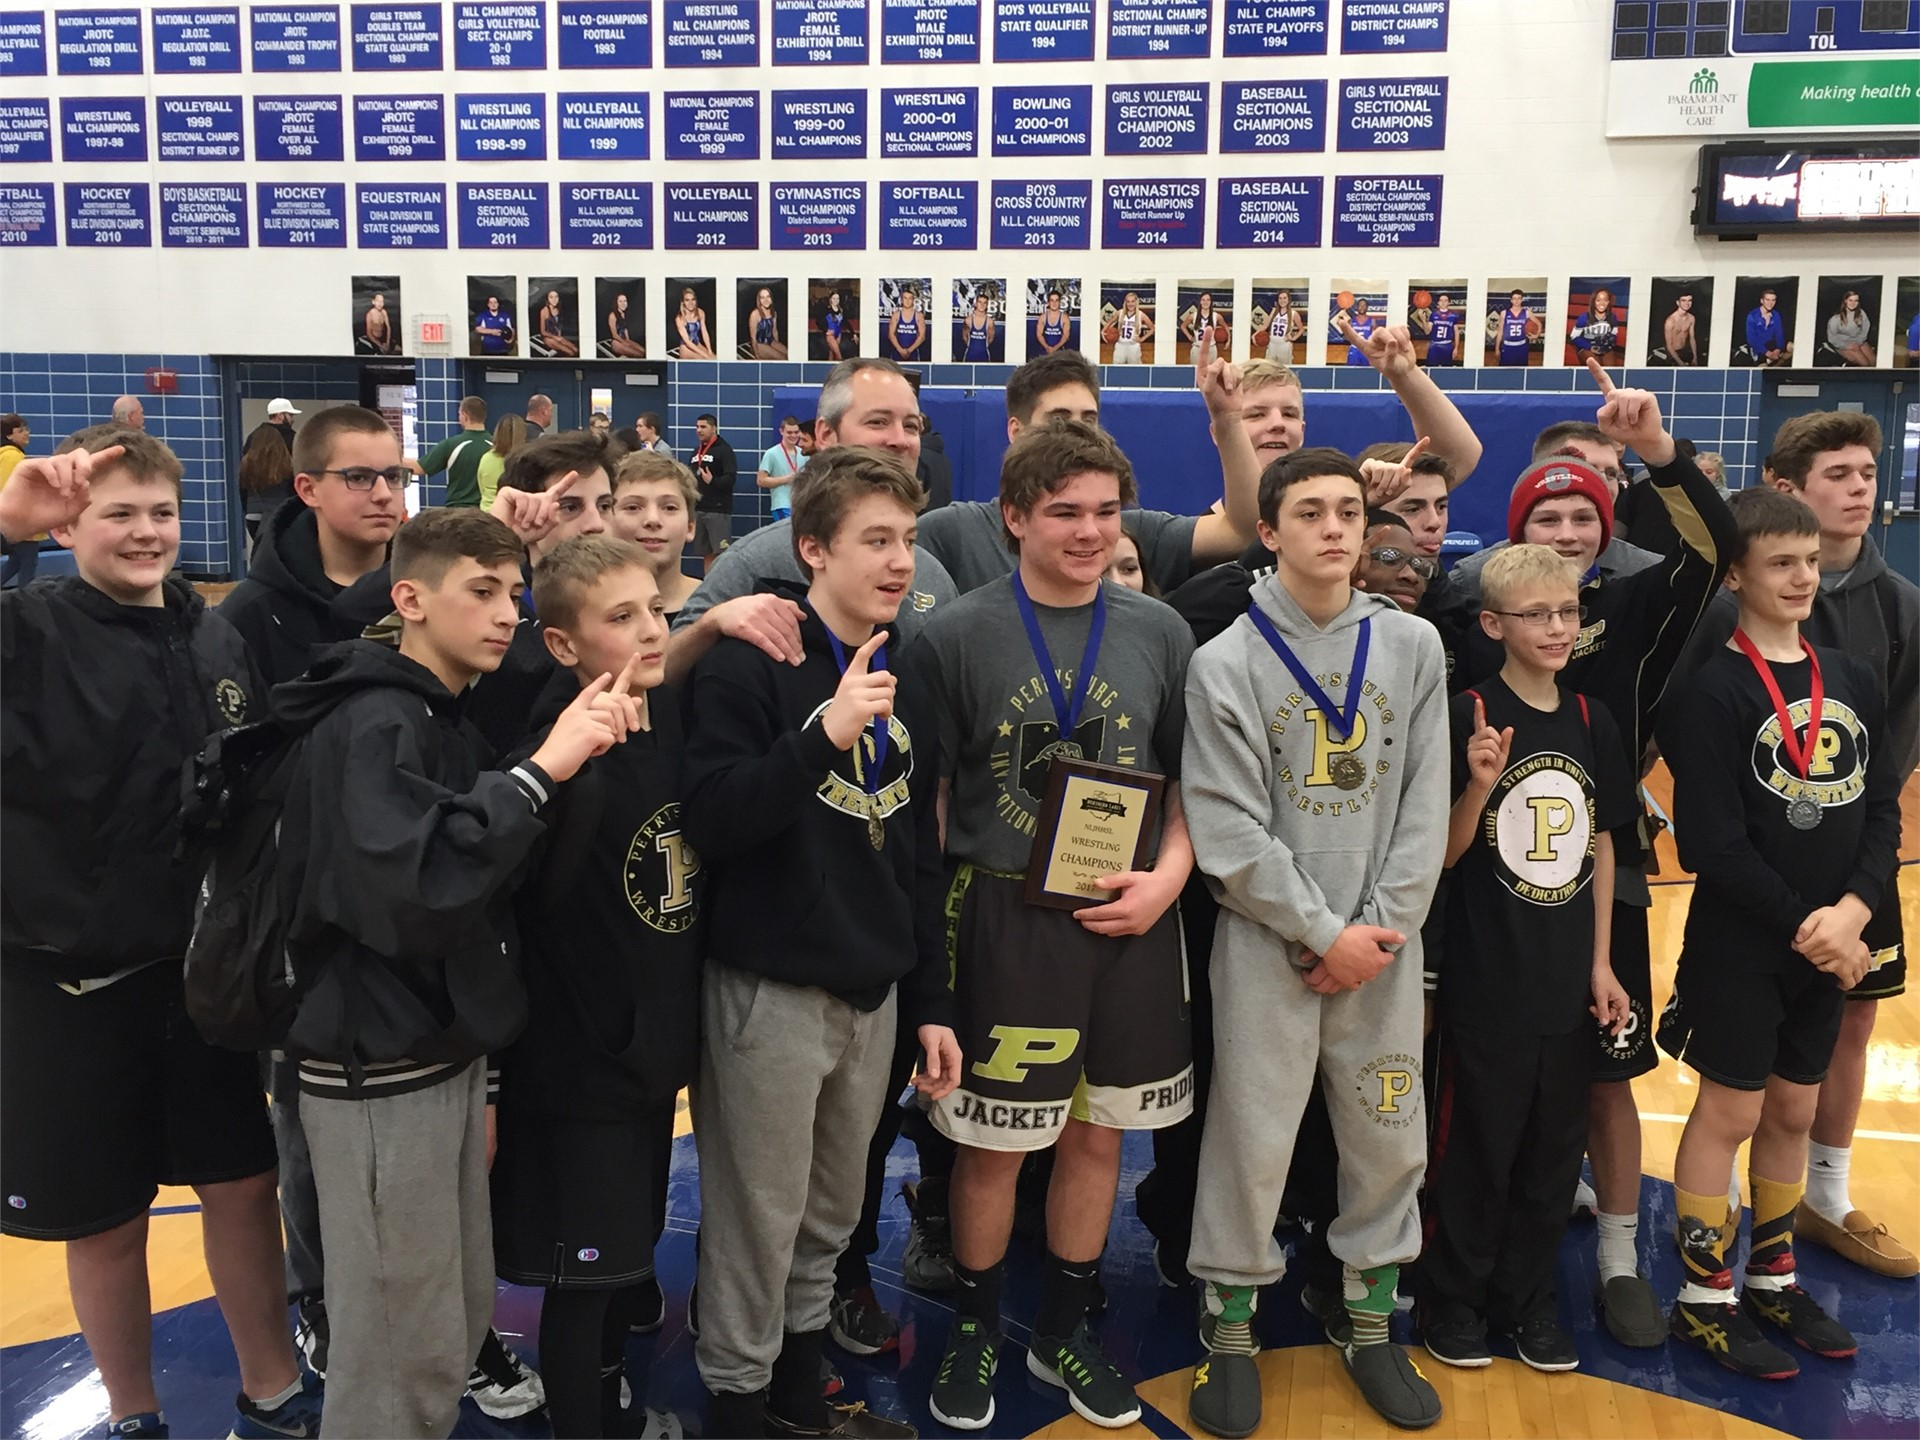 Group image of 2017 Junior High Wrestling NLL Champions